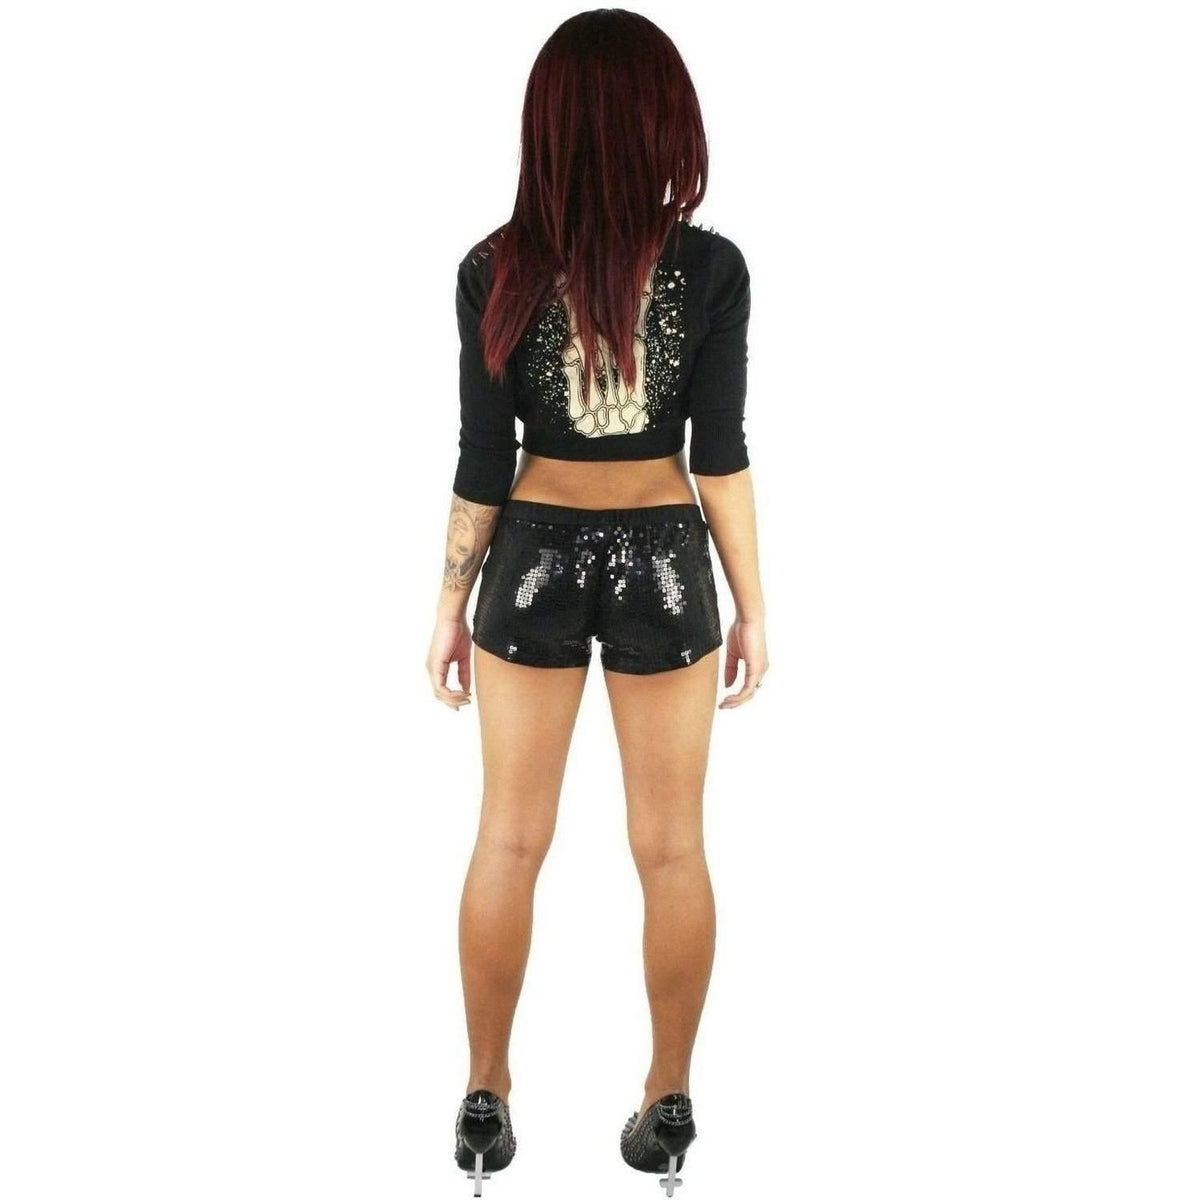 RAT BABY LADIES SEQUIN SHORTS BONES